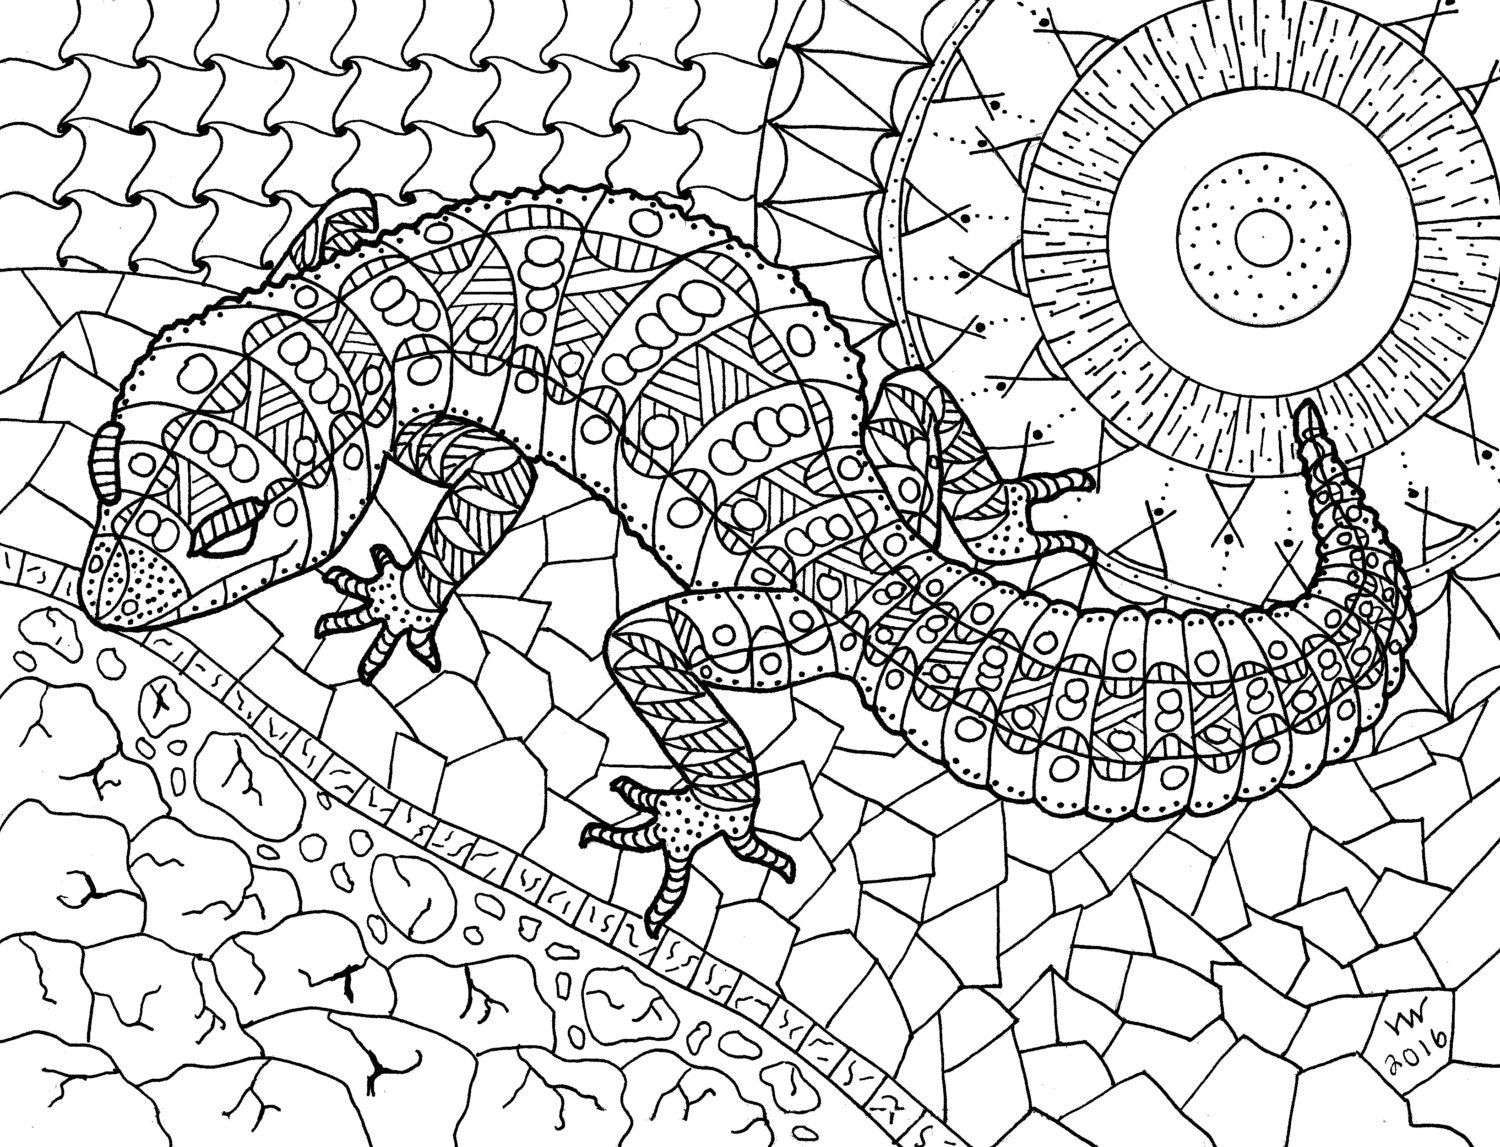 Coloring Page Zentangle Lizard Adult Coloring Page Digital